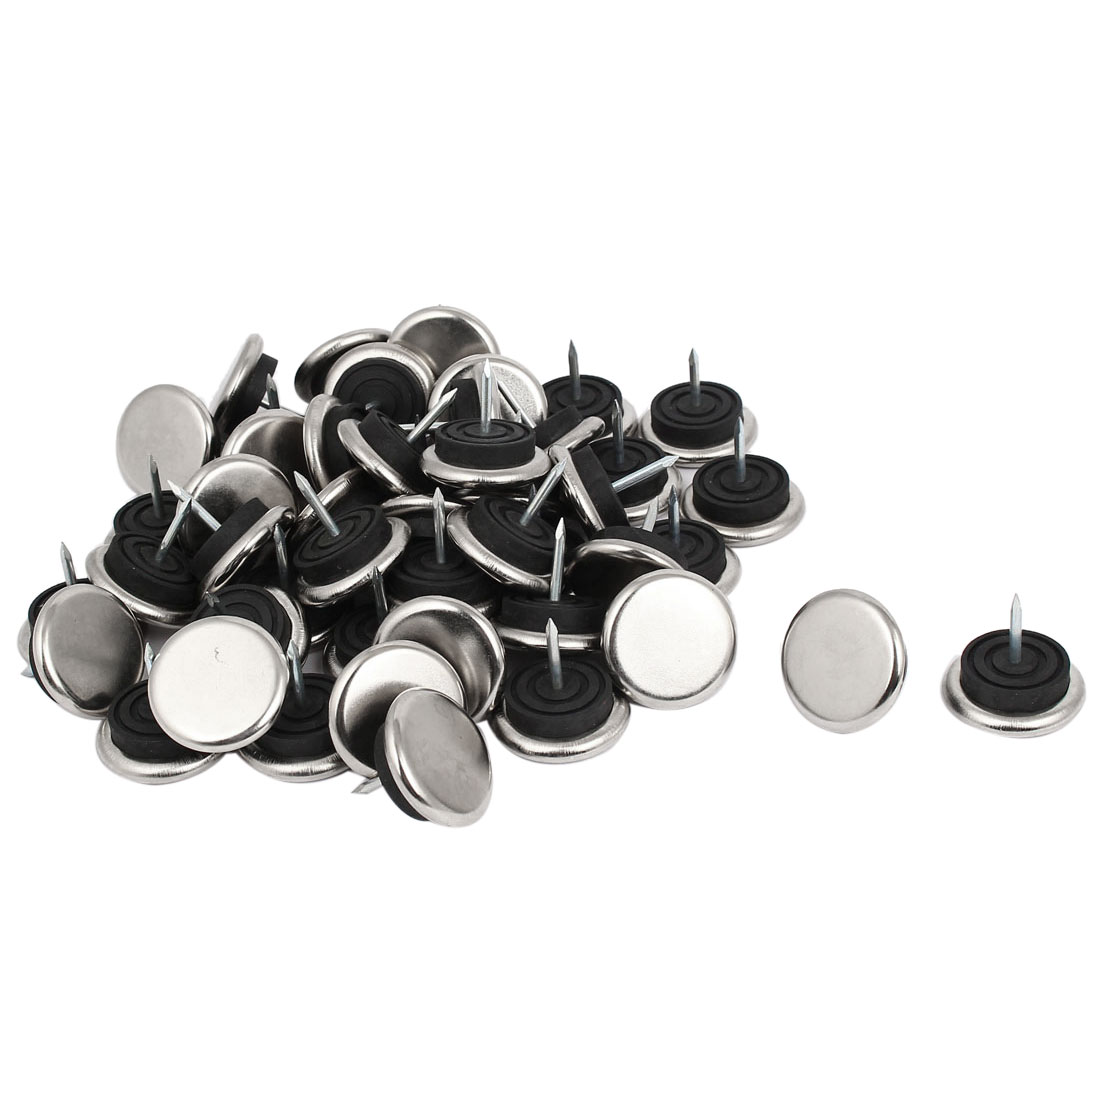 32mm Metal Furniture Chair Table Leg Glide Slide Nail Protector 50 Pcs